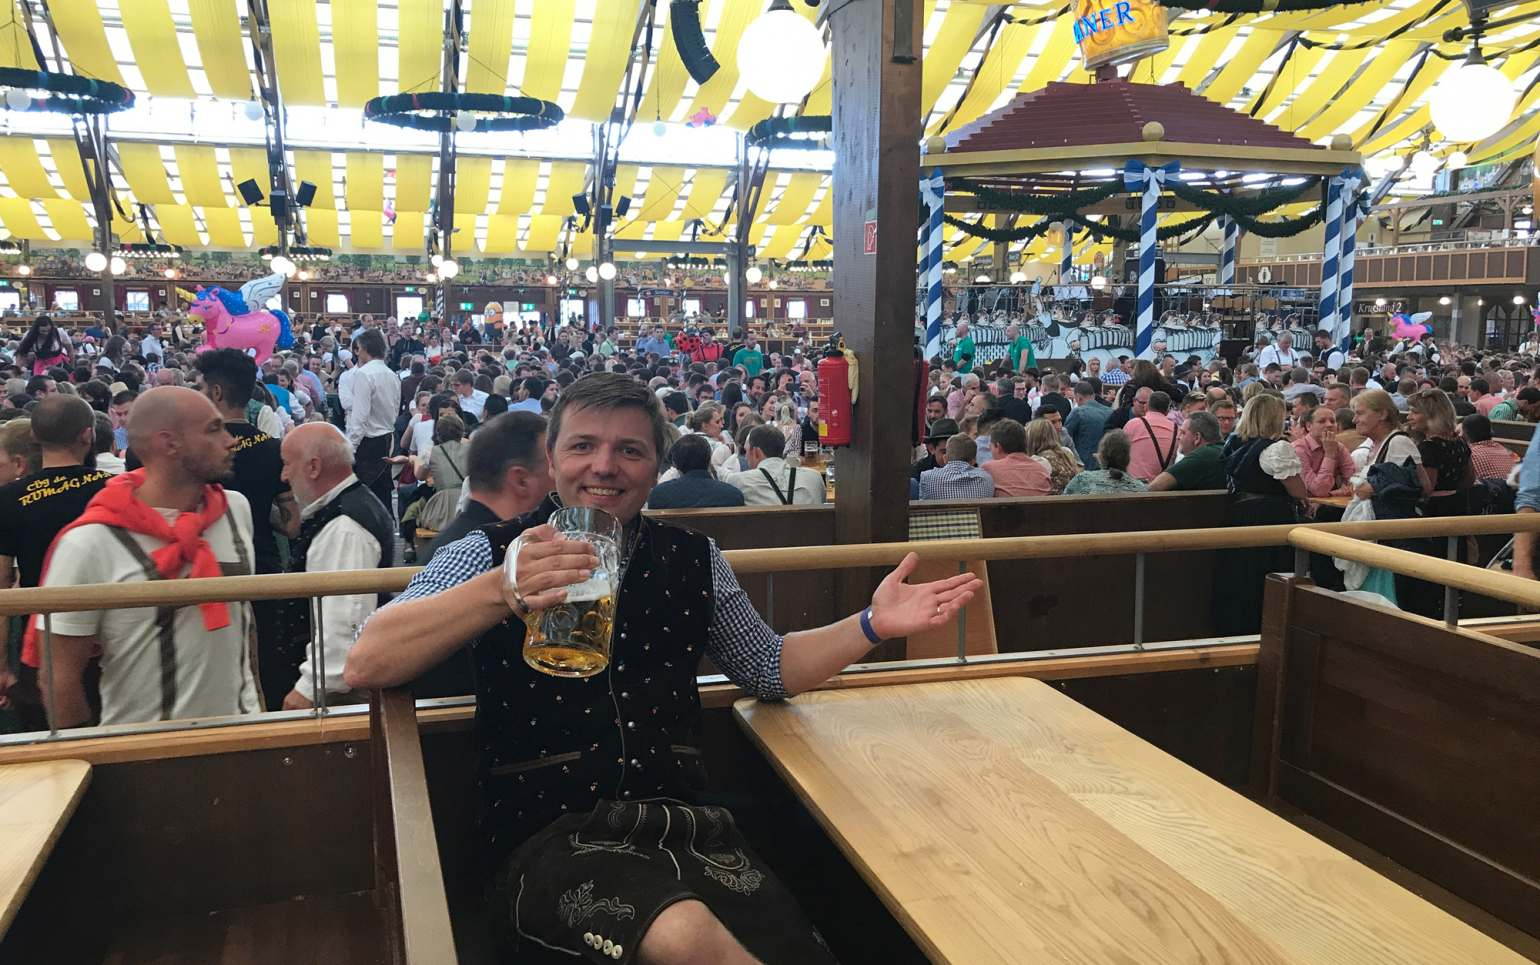 fritsch-tschaidse_architekten_Wiesn_02